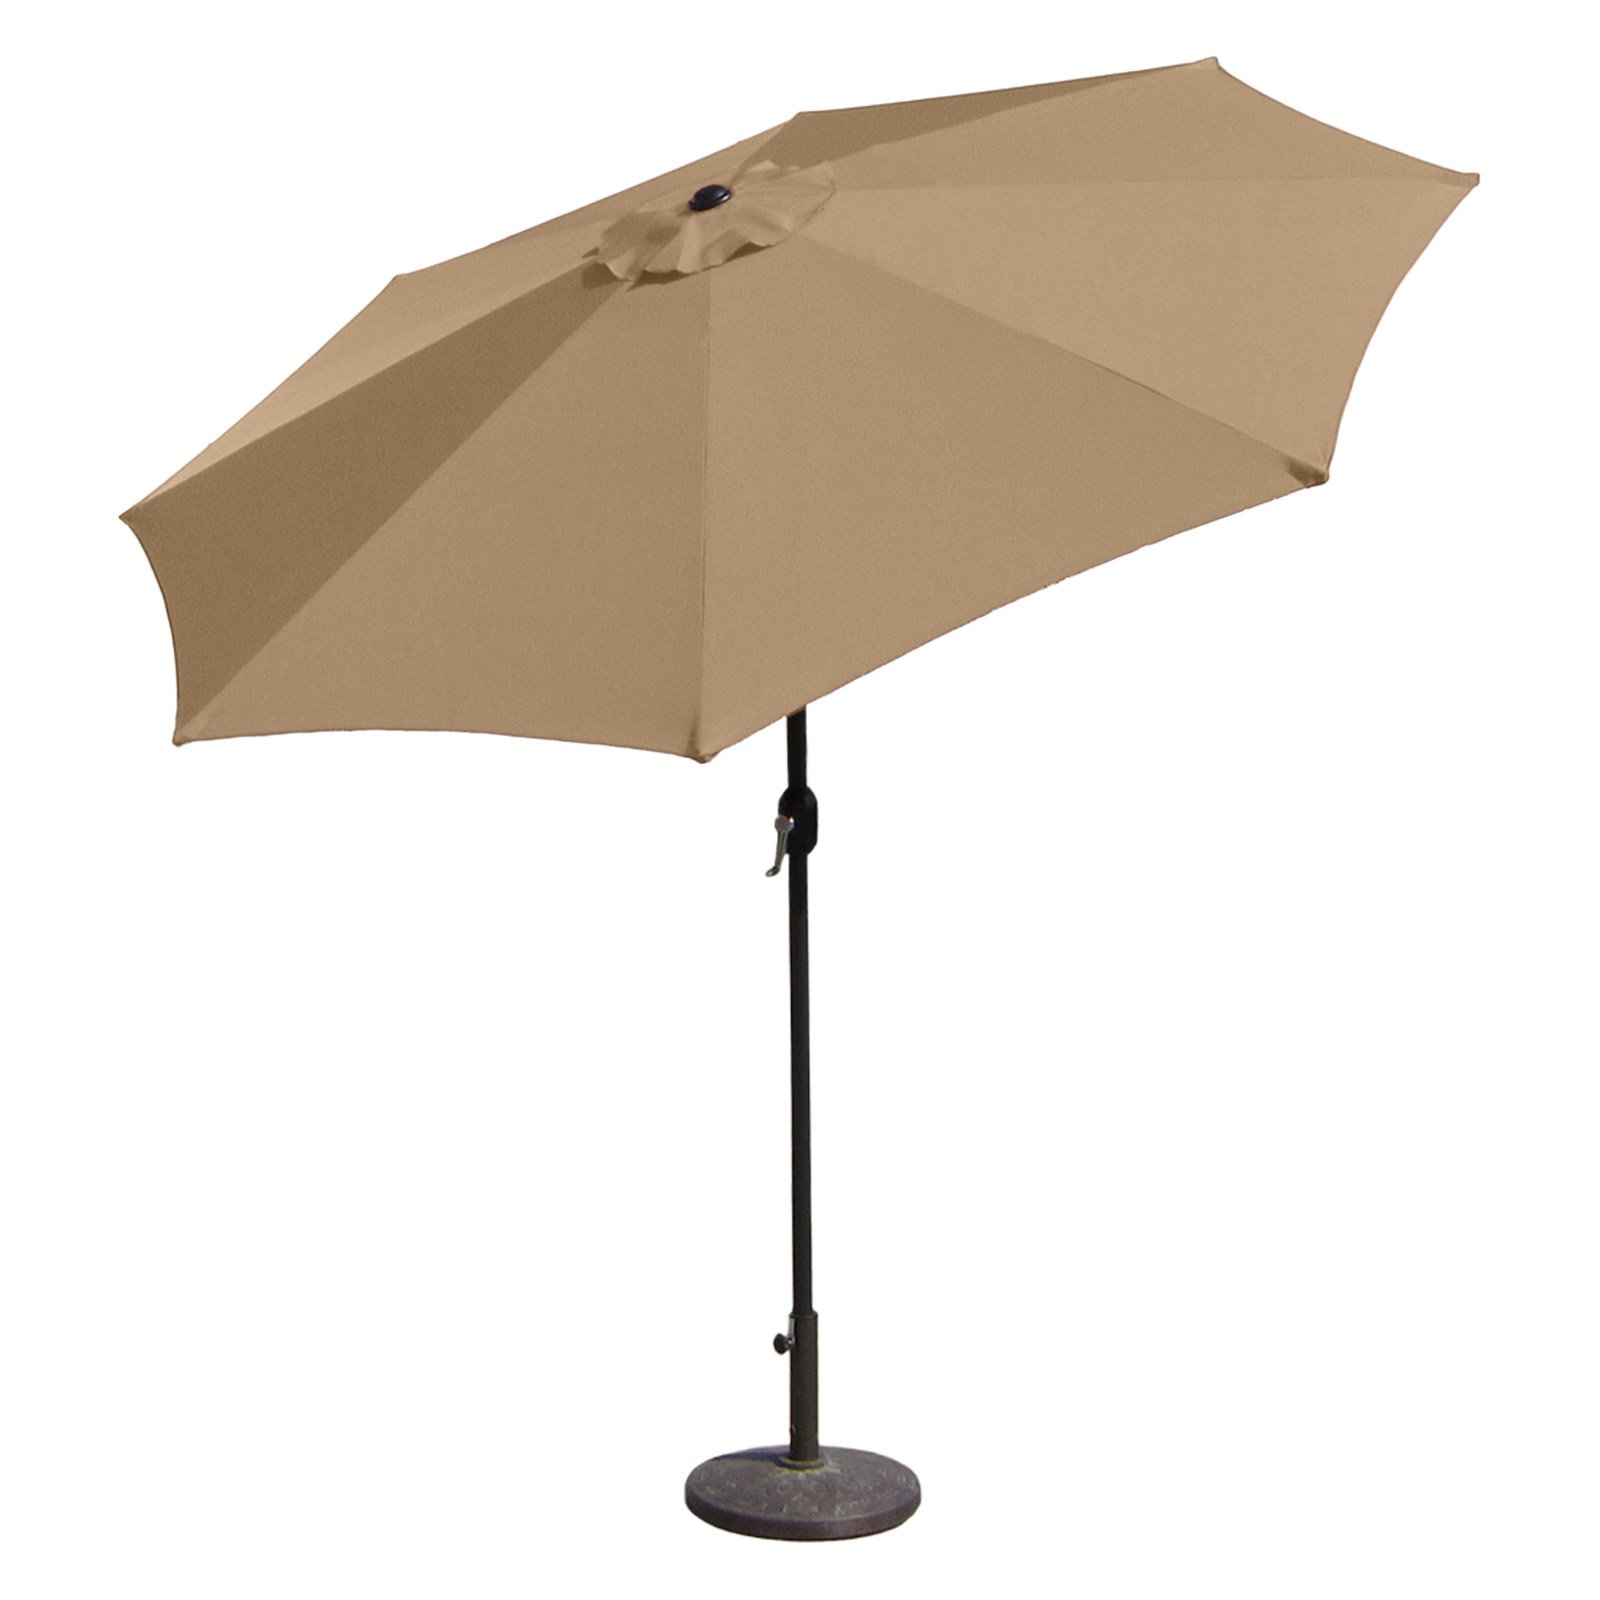 Aluminum Patio Umbrella with Crank Lift and Tilt Function, 7' by Budge Industries